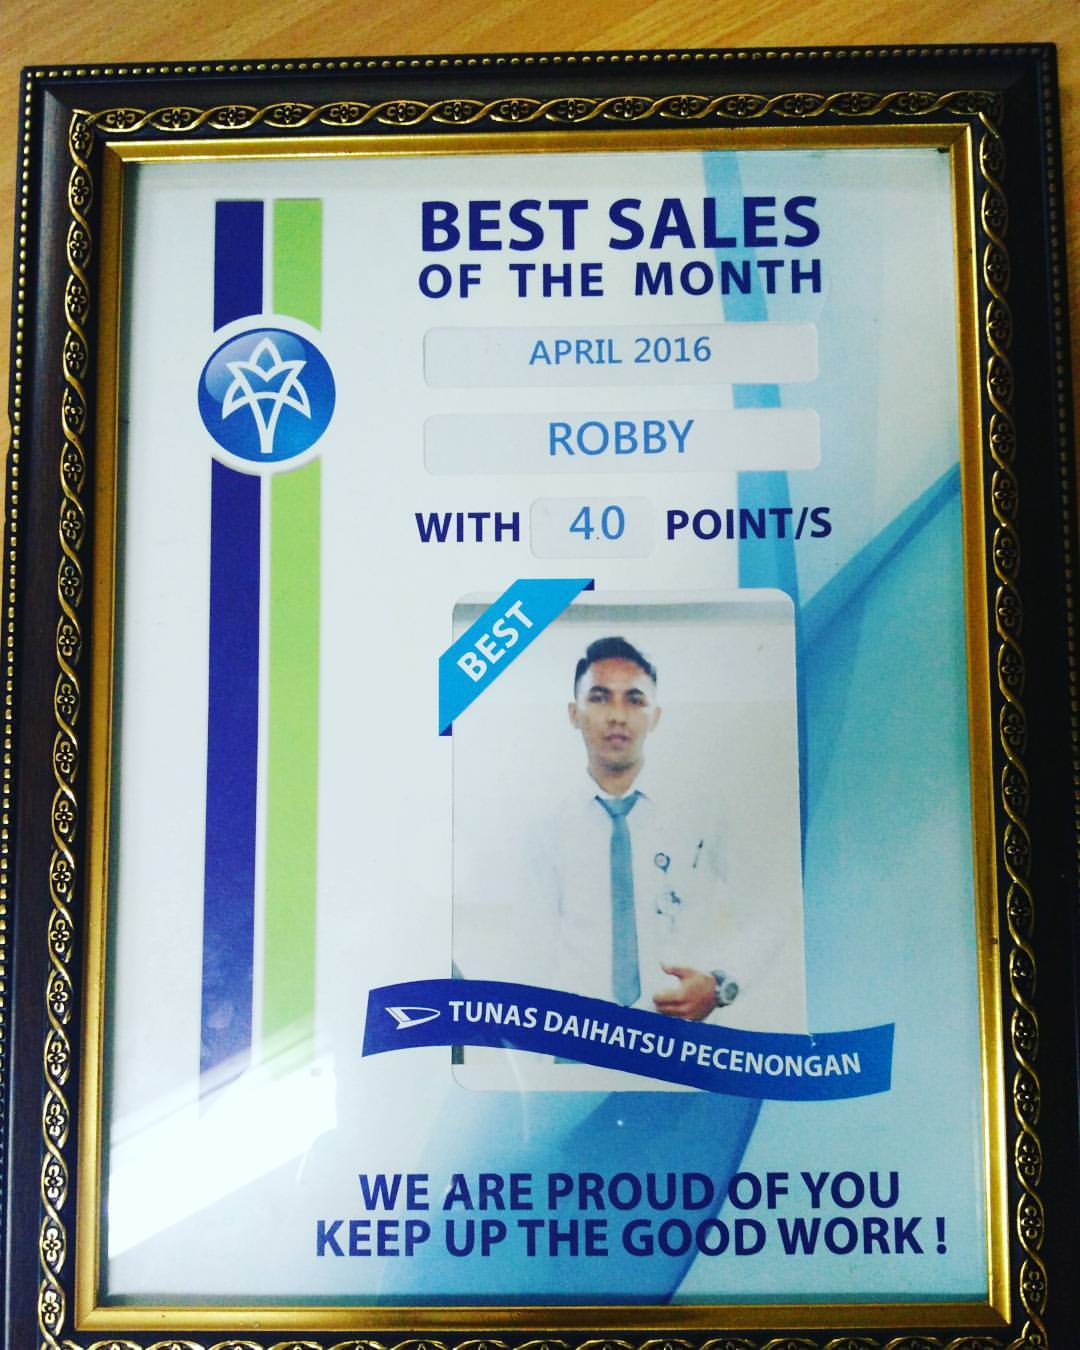 BEST SALES OF THE MOUNT